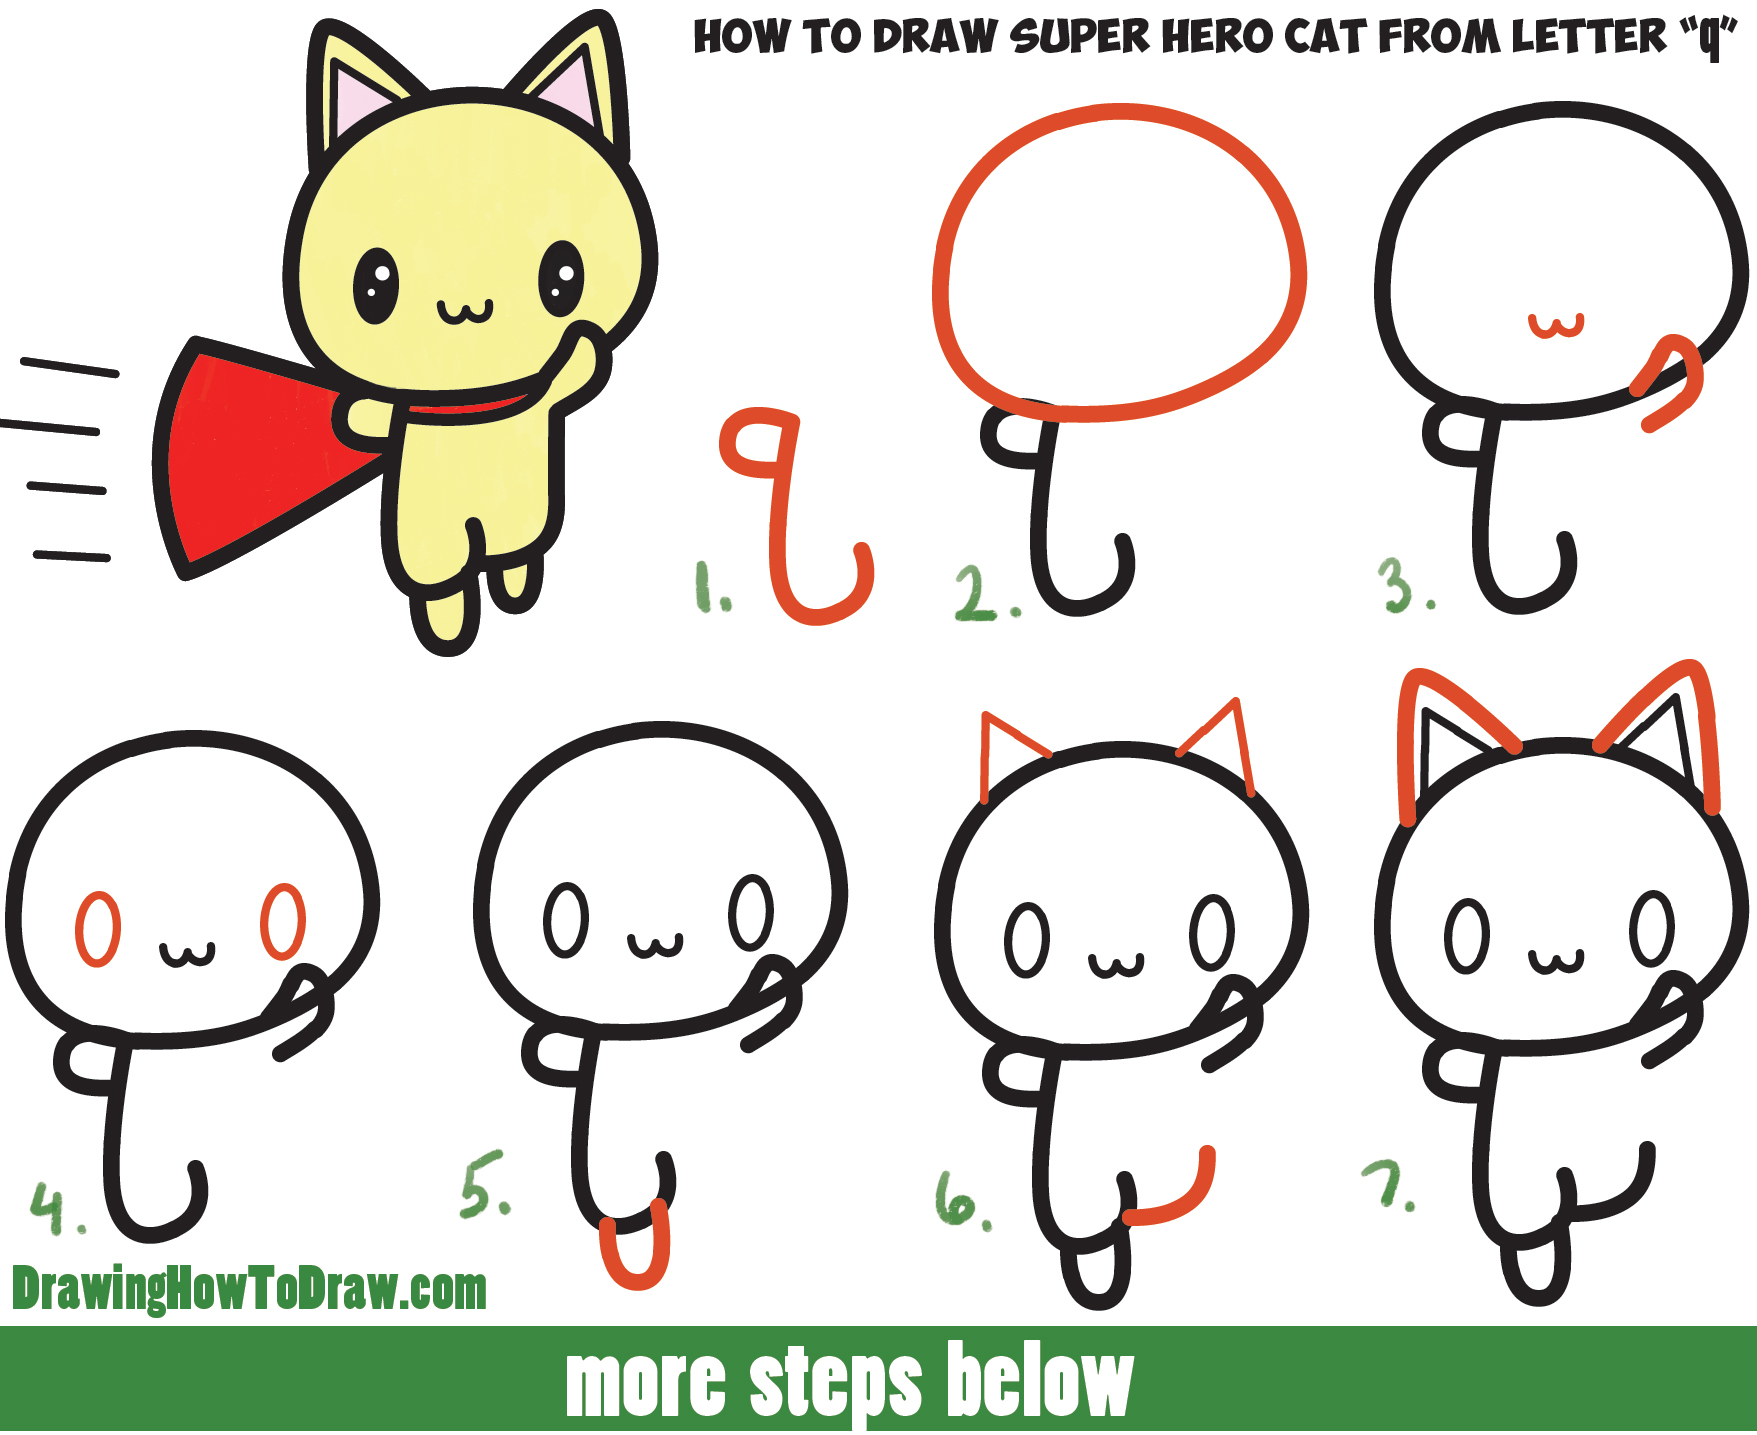 How To Draw A Cute Cat Super Hero Kawaii With Easy Step By Step